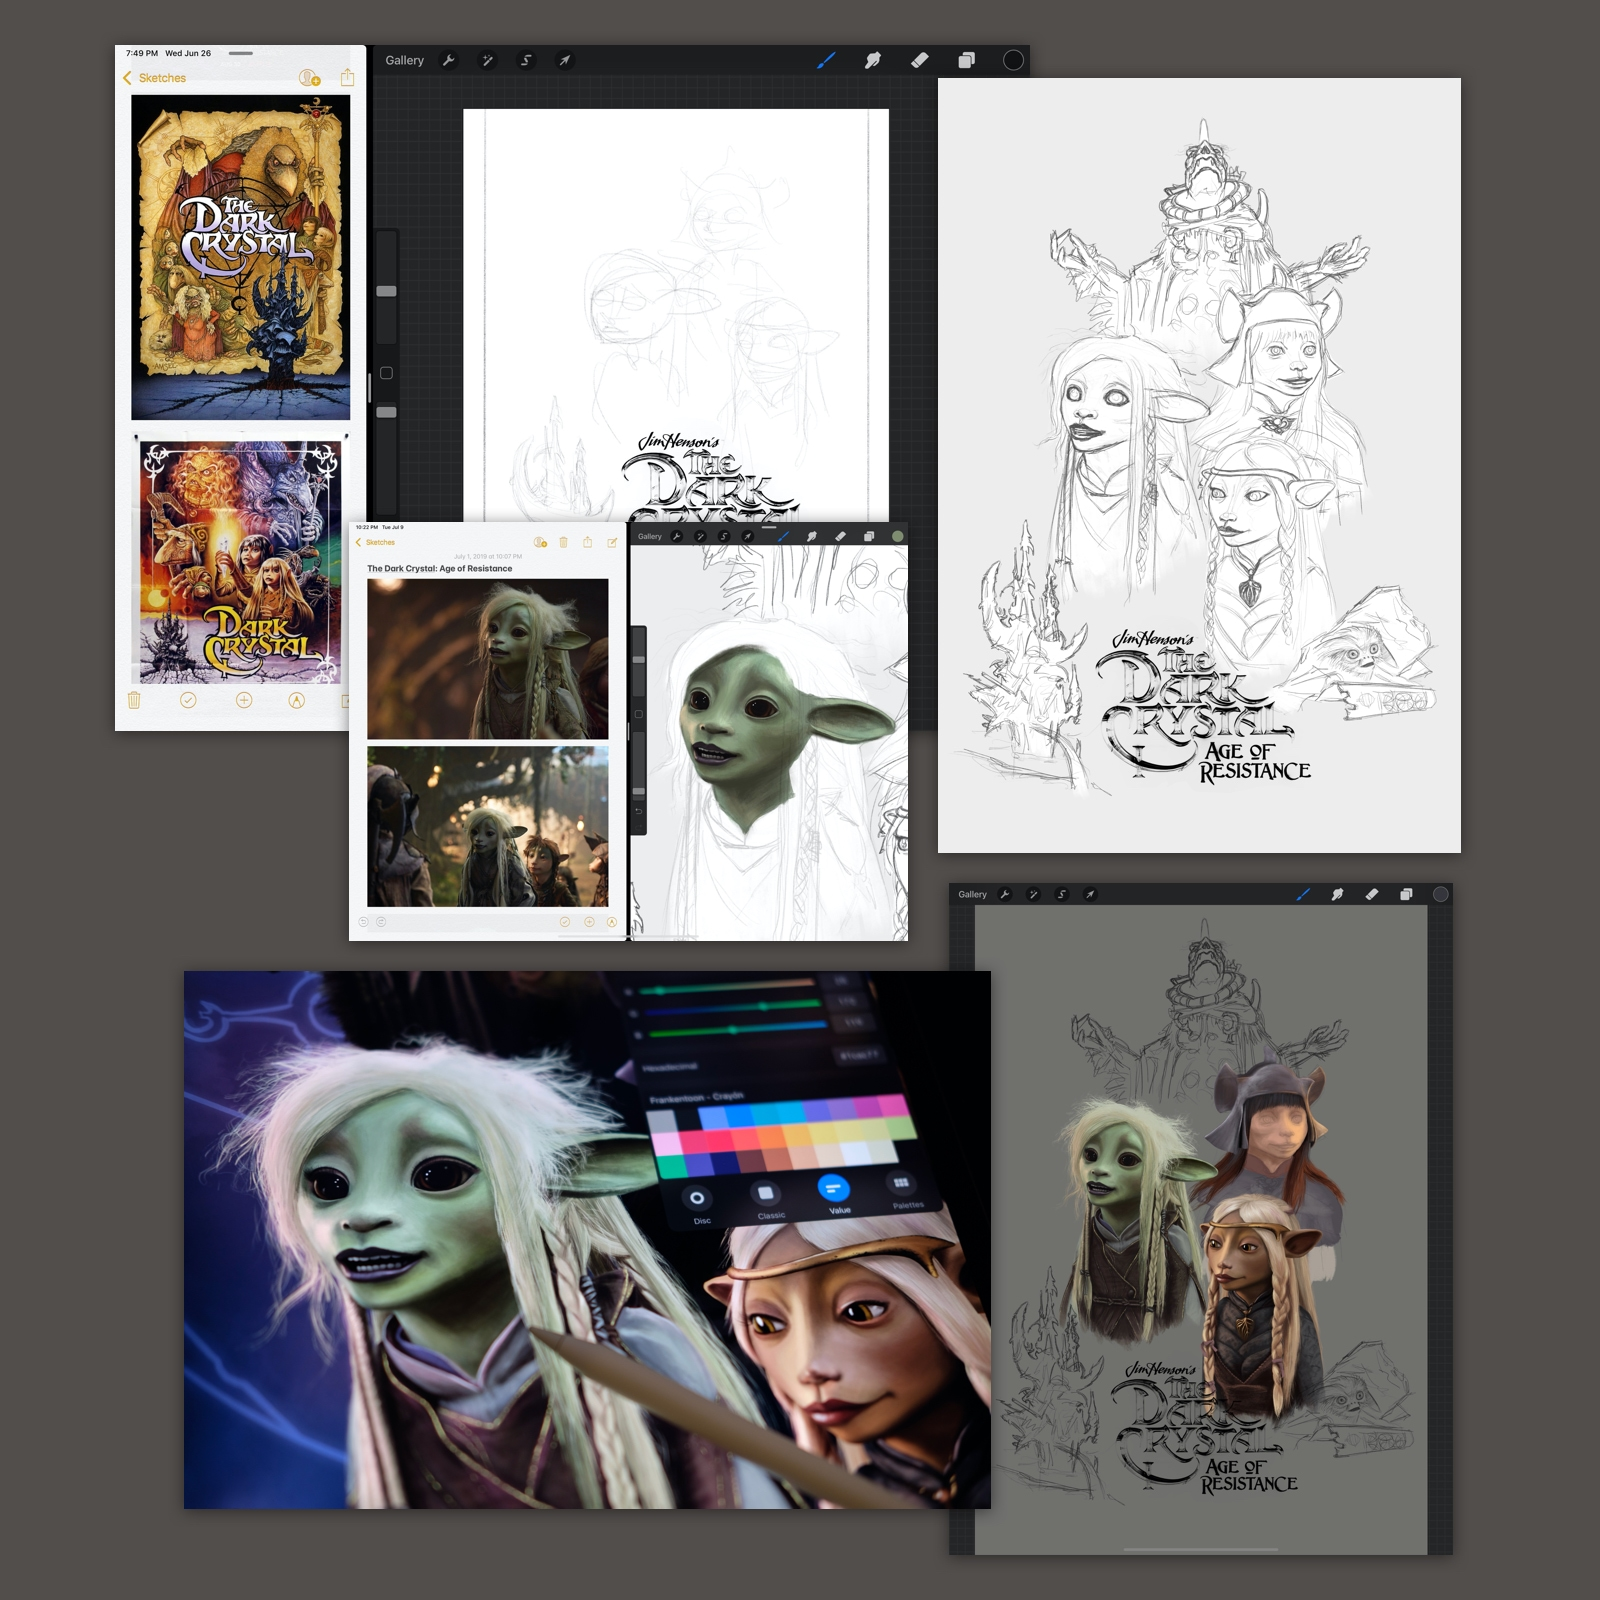 Dark Crystal Poster Process